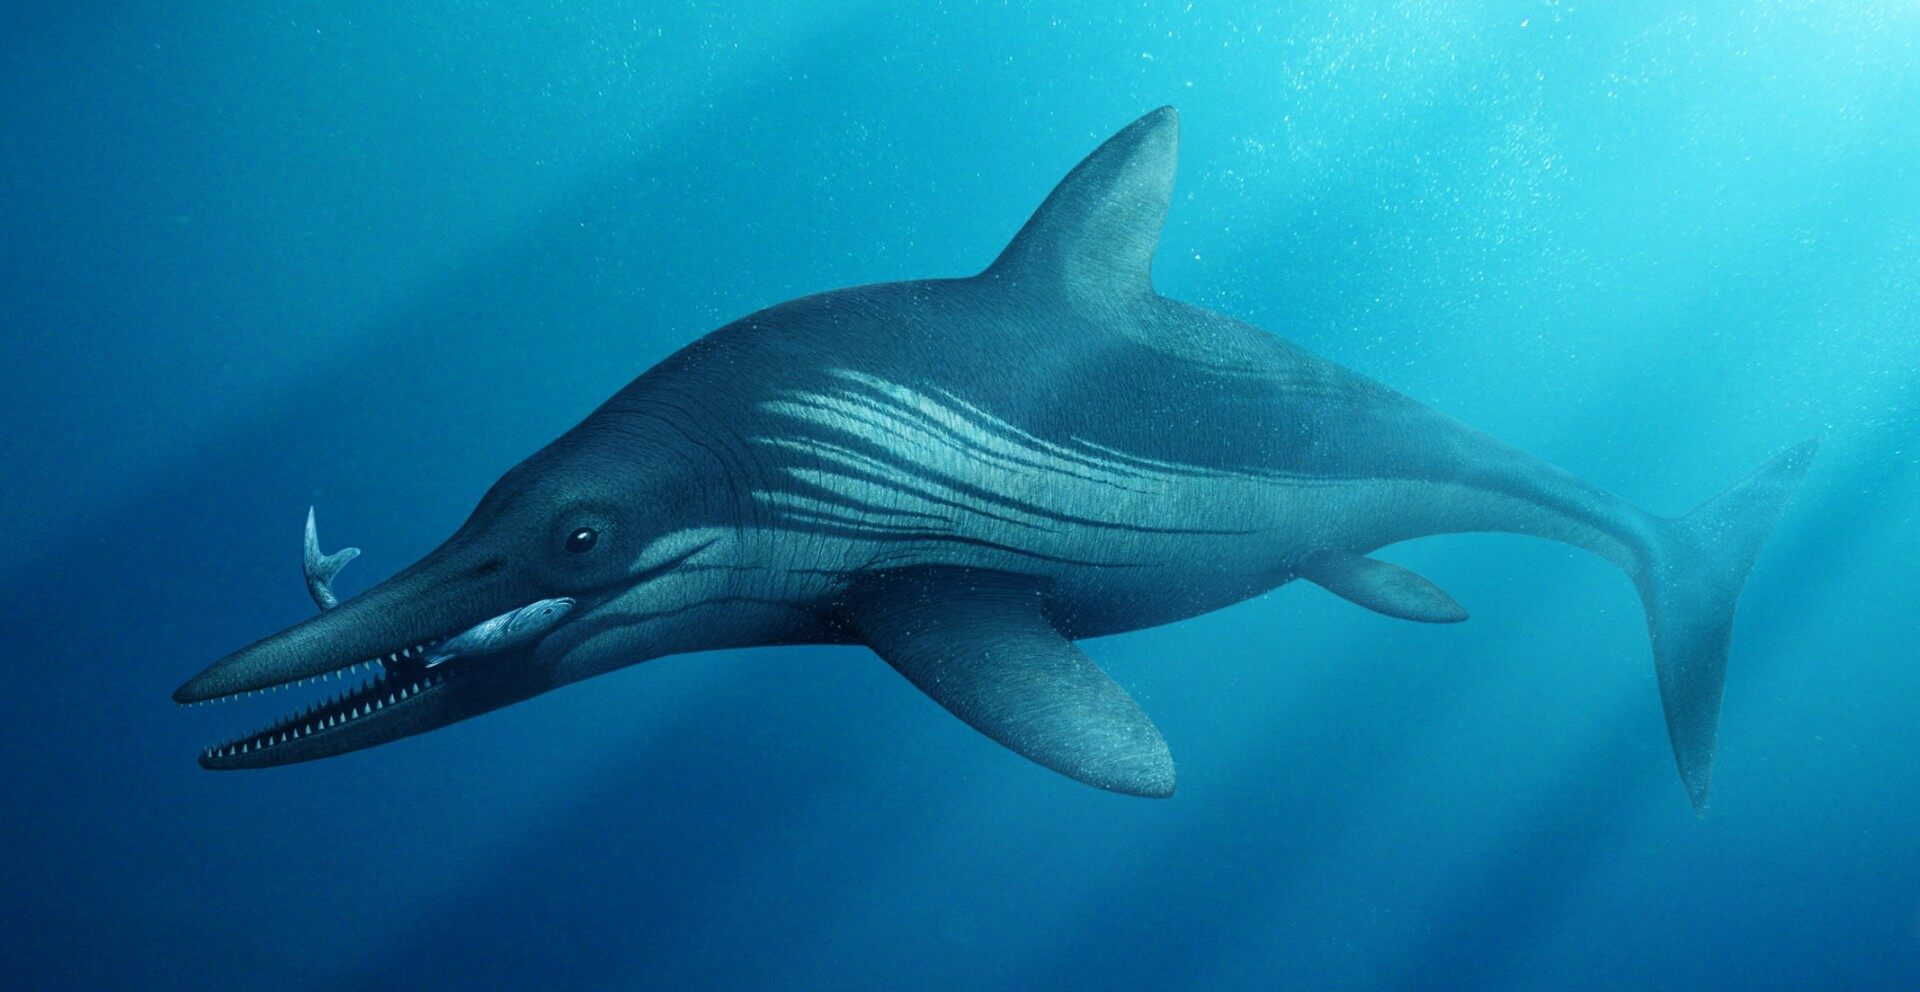 240M-calendar year-old 'megapredator' experienced 12-foot reptile in its stomach